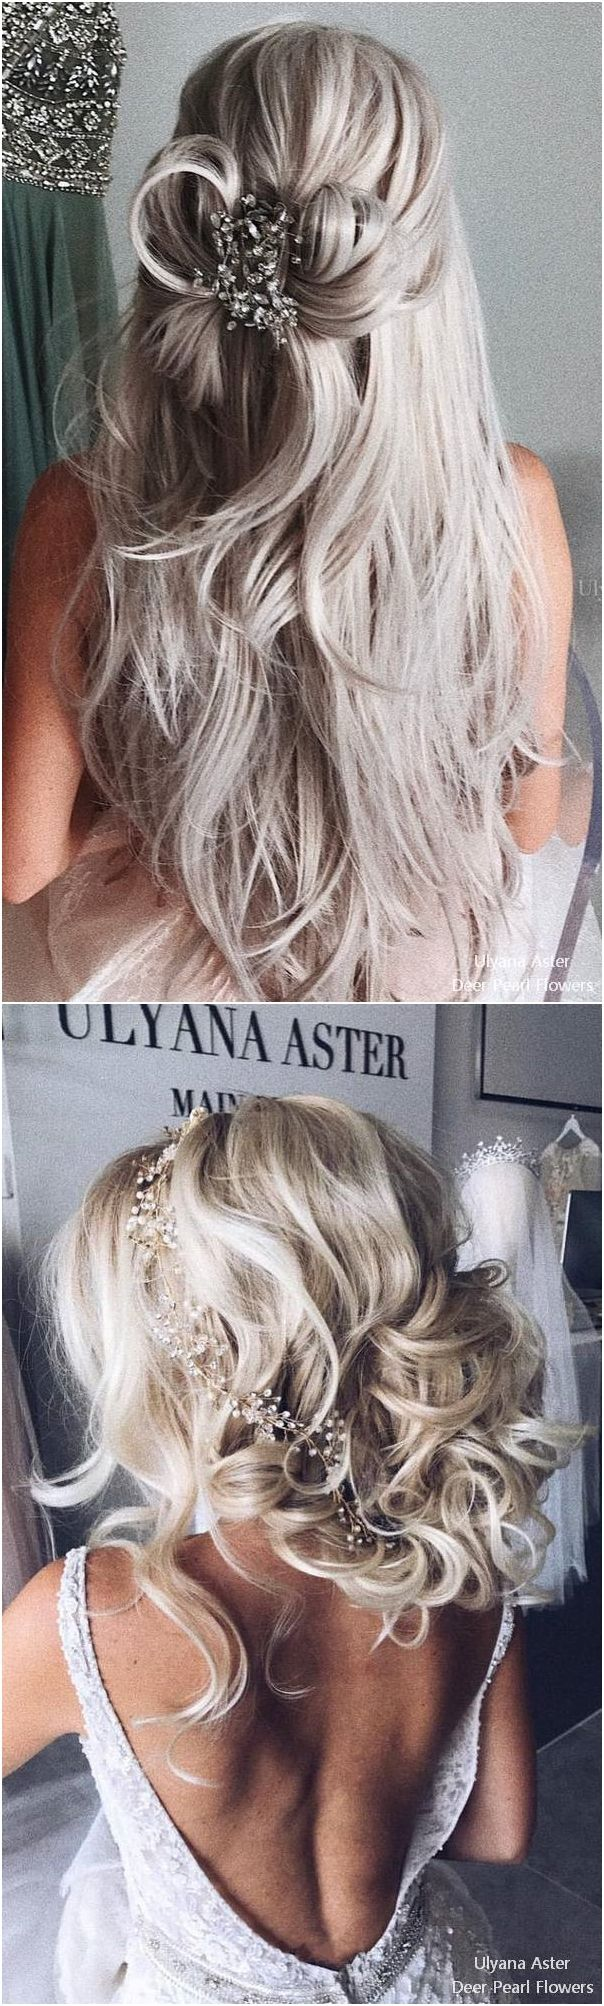 Ulyana Aster Long Bridal Hairstyles for Wedding #weddings #hairstyles #fashion #...